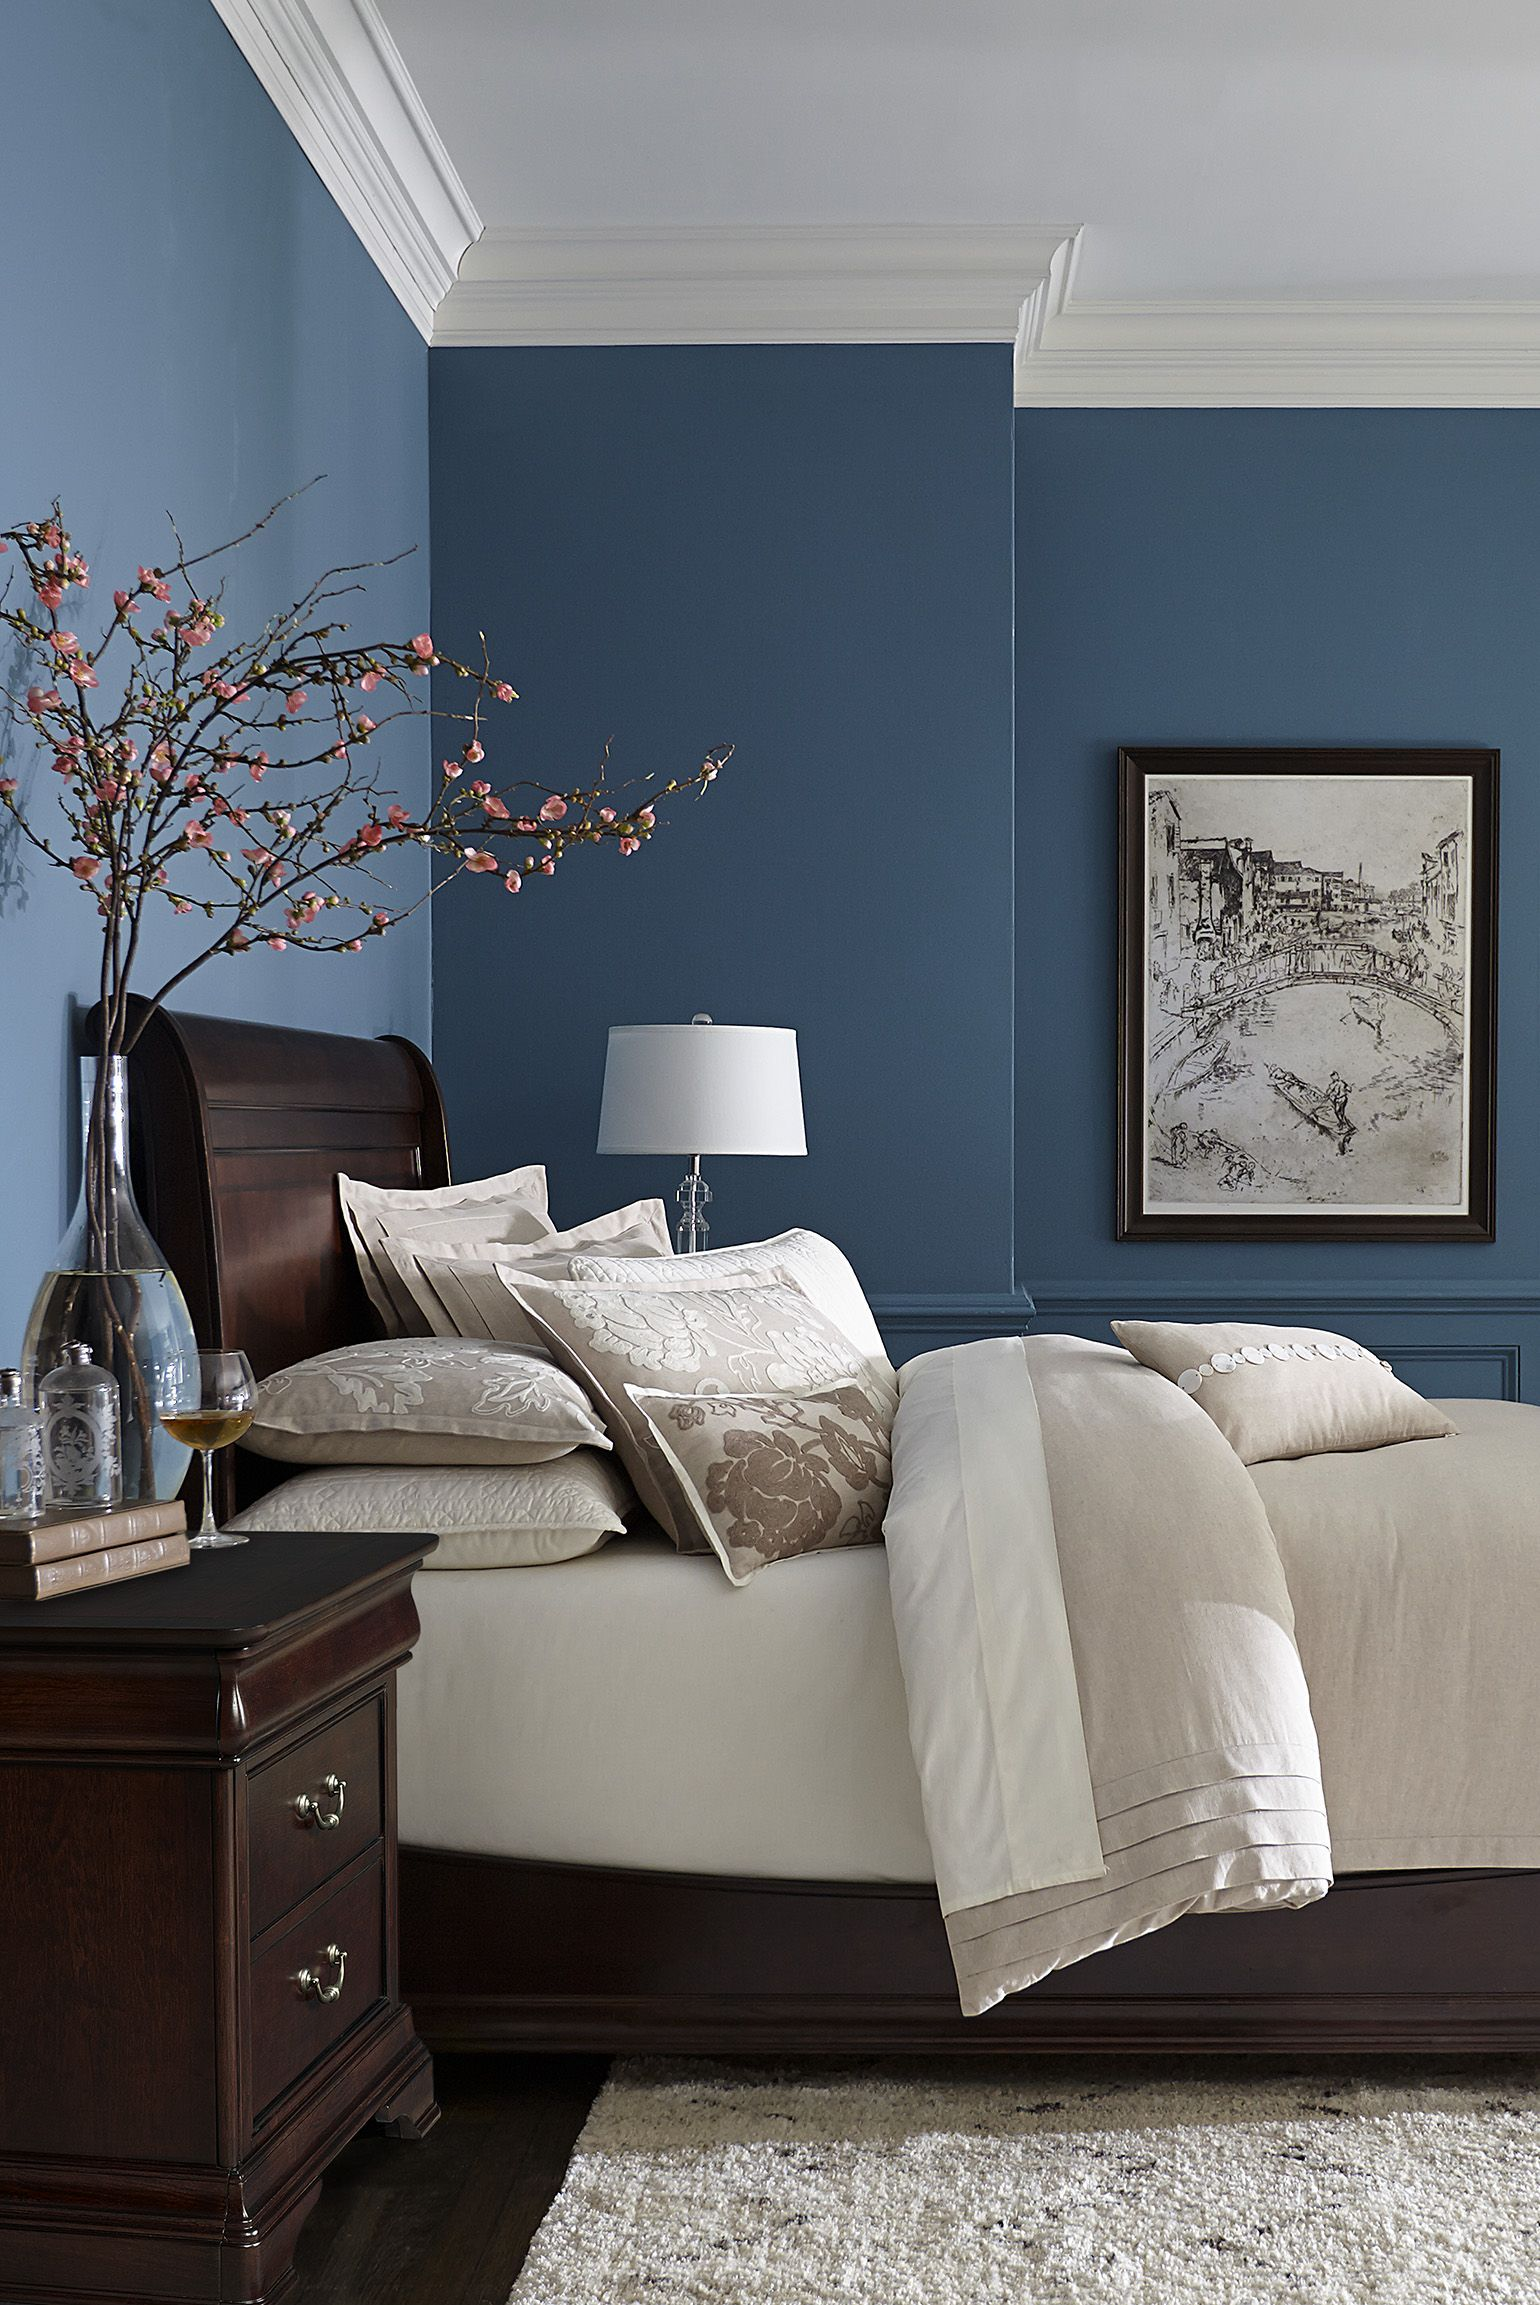 Made With Hardwood Solids With Cherry Veneers And Walnut Inlays Our Orleans Bedroom Collection Brin Blue Bedroom Walls Bedroom Wall Colors Best Bedroom Colors